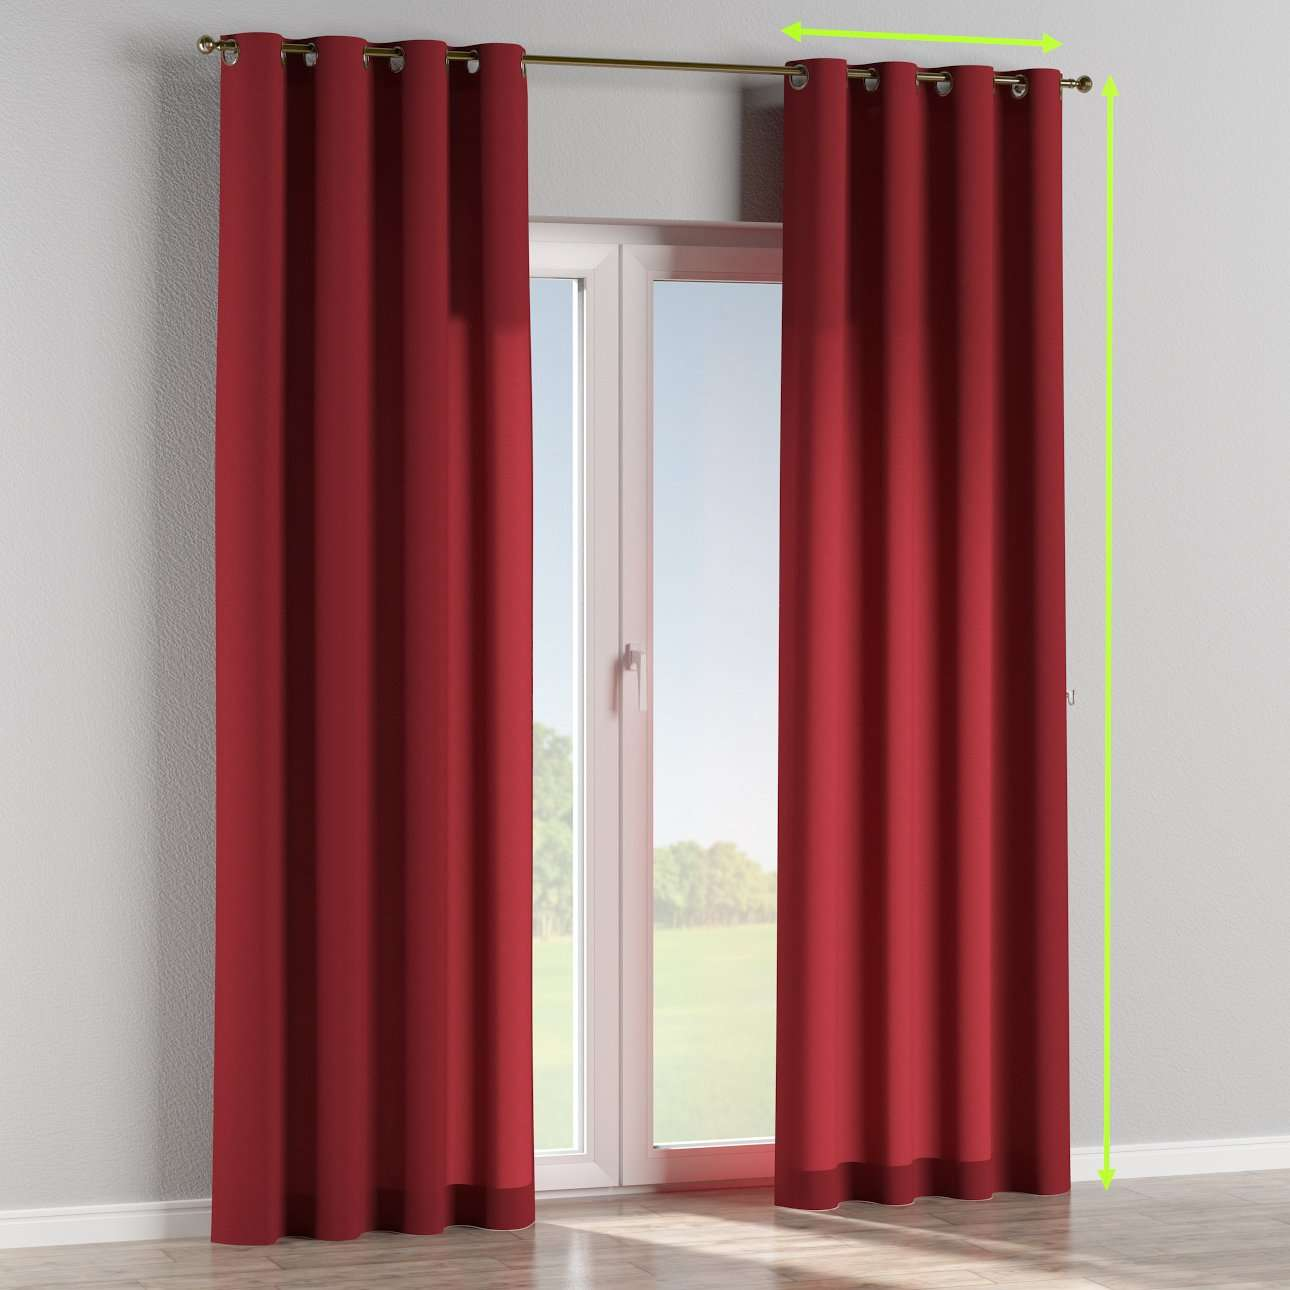 Eyelet curtains in collection Jupiter, fabric: 127-15